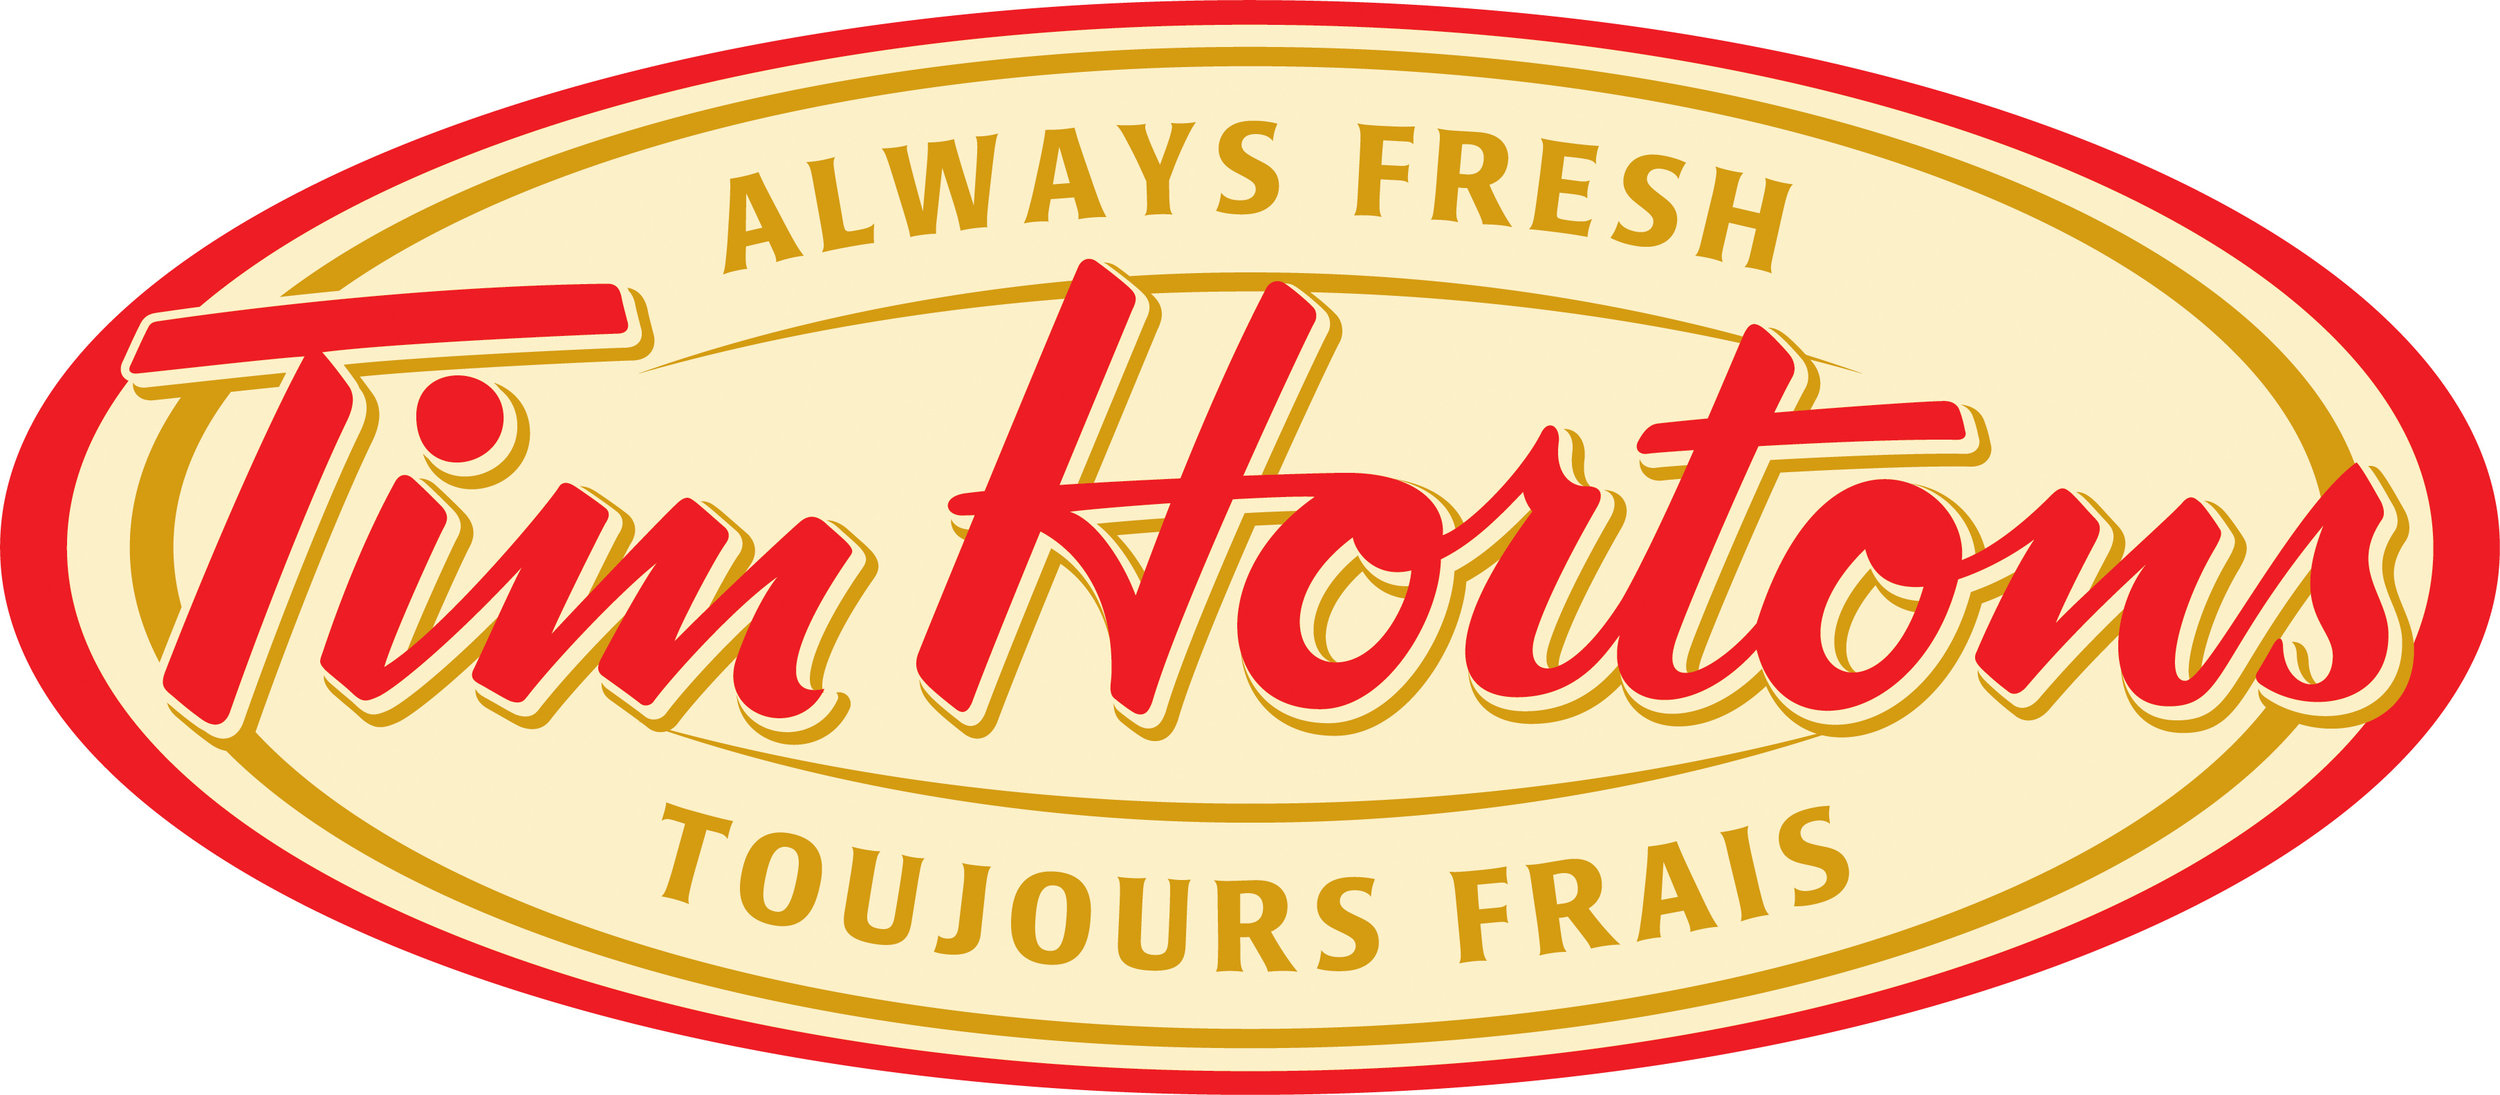 Tim_Hortons_Always_Fresh_Bilingual.jpg